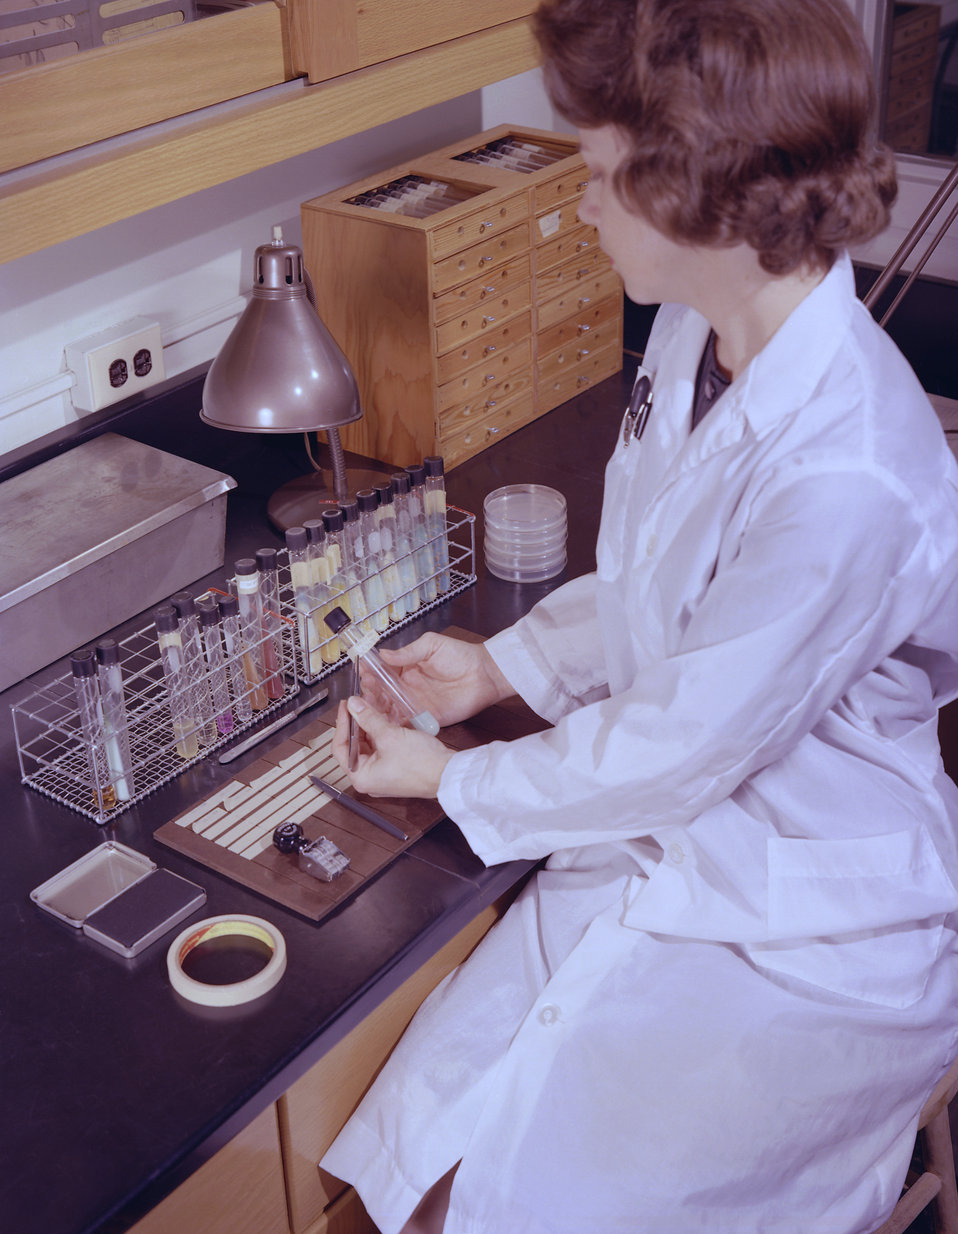 This historic 1963 photograph depicted laboratorian, Charlotte Patton, as she was labeling vials containing Lowenstein-Jensen growth medium